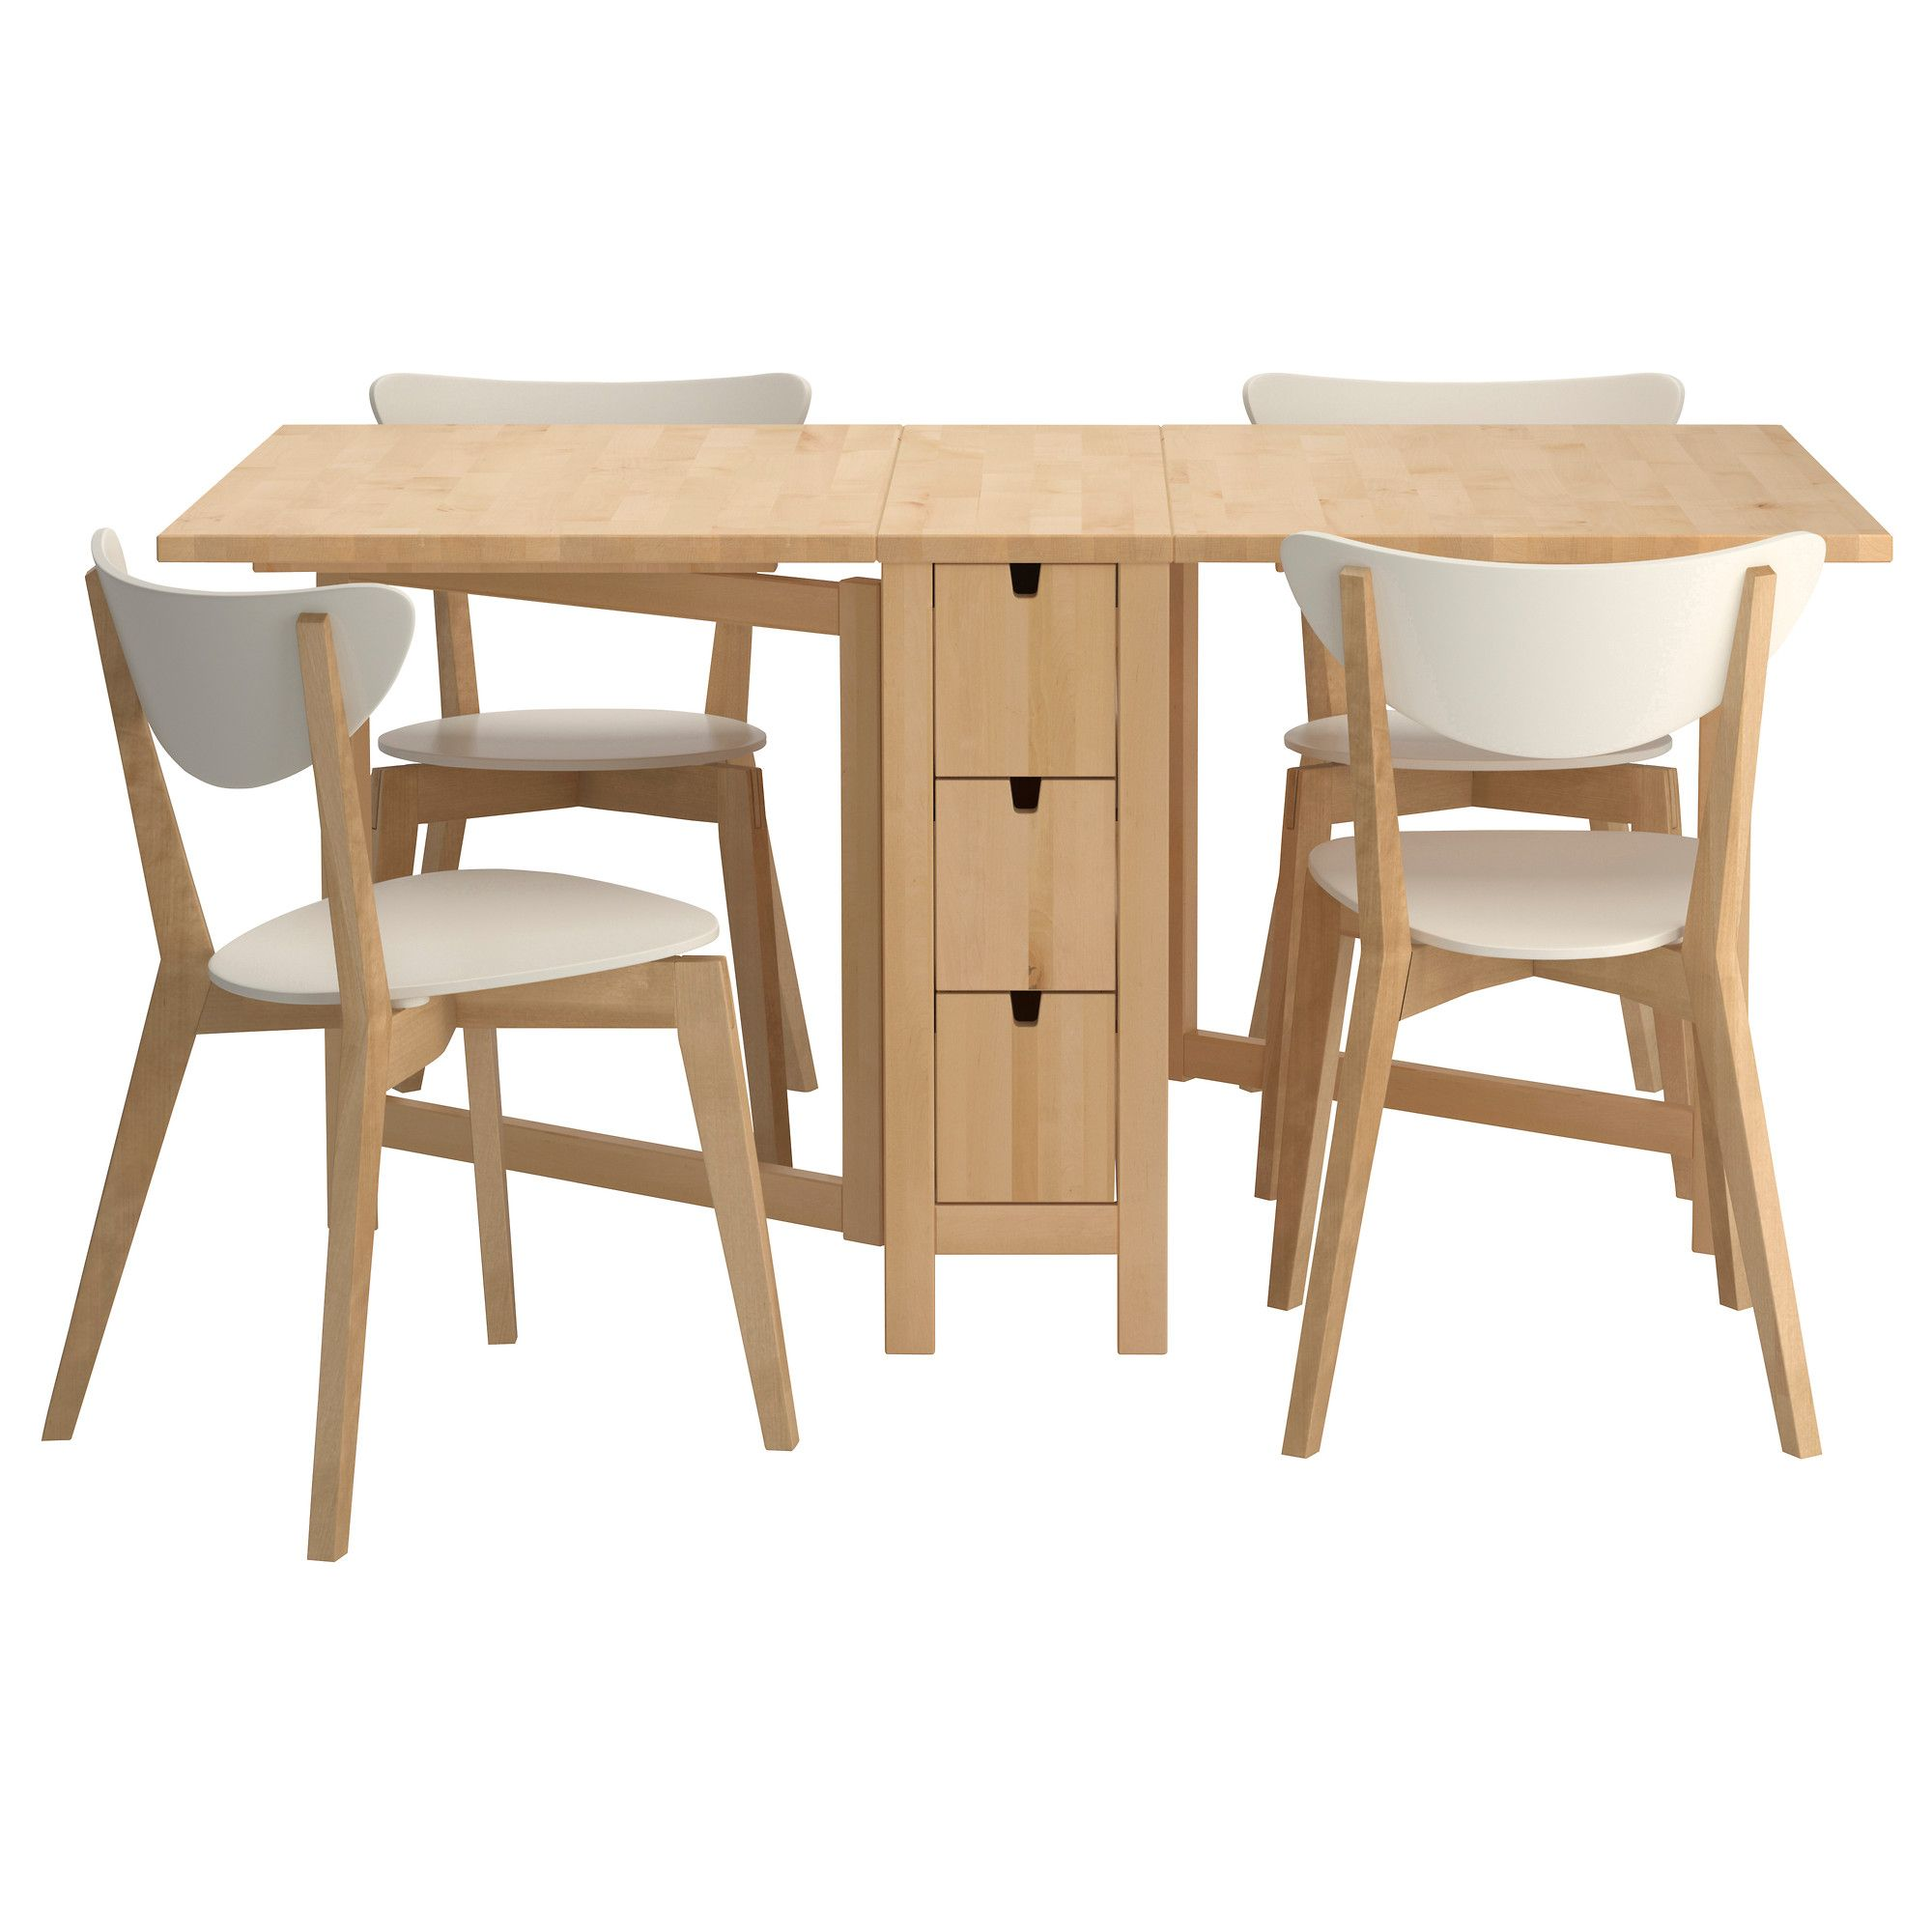 Norden nordmyra table and 4 chairs ikea for the love for Dining table compact designs